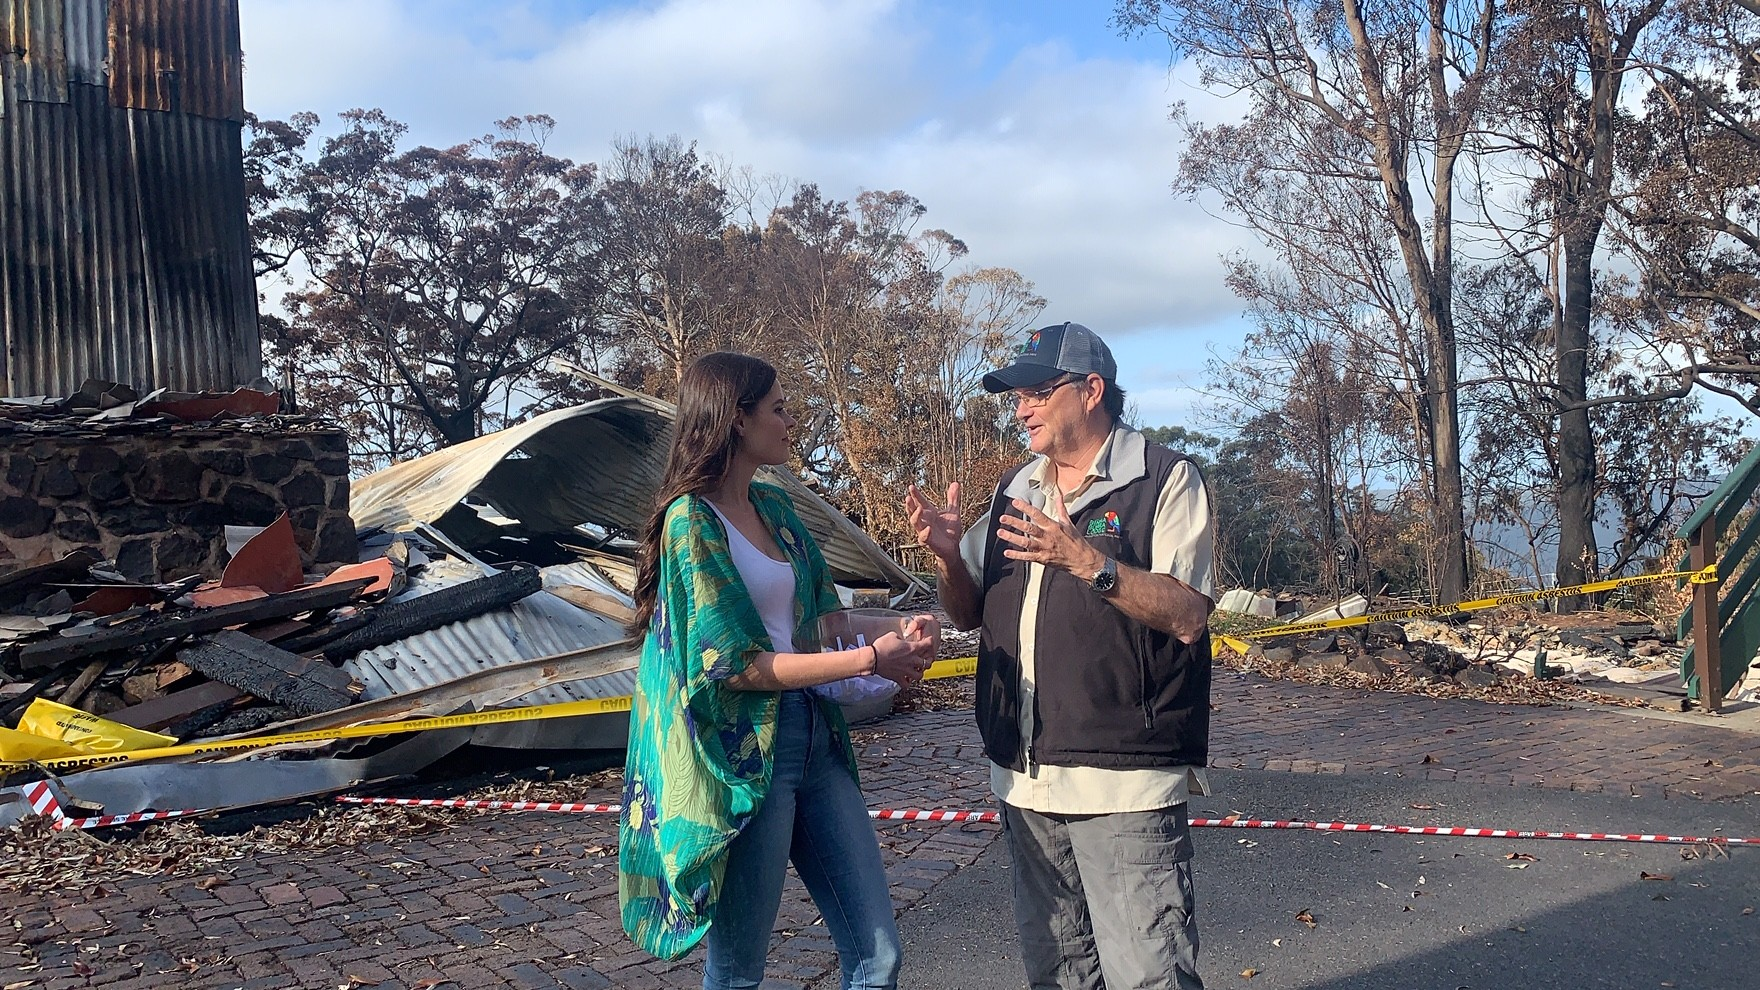 Cara-Lee conducts an interview I did with Steve on the Binna Burra location shortly after the fire that was used for fund-raising purposes